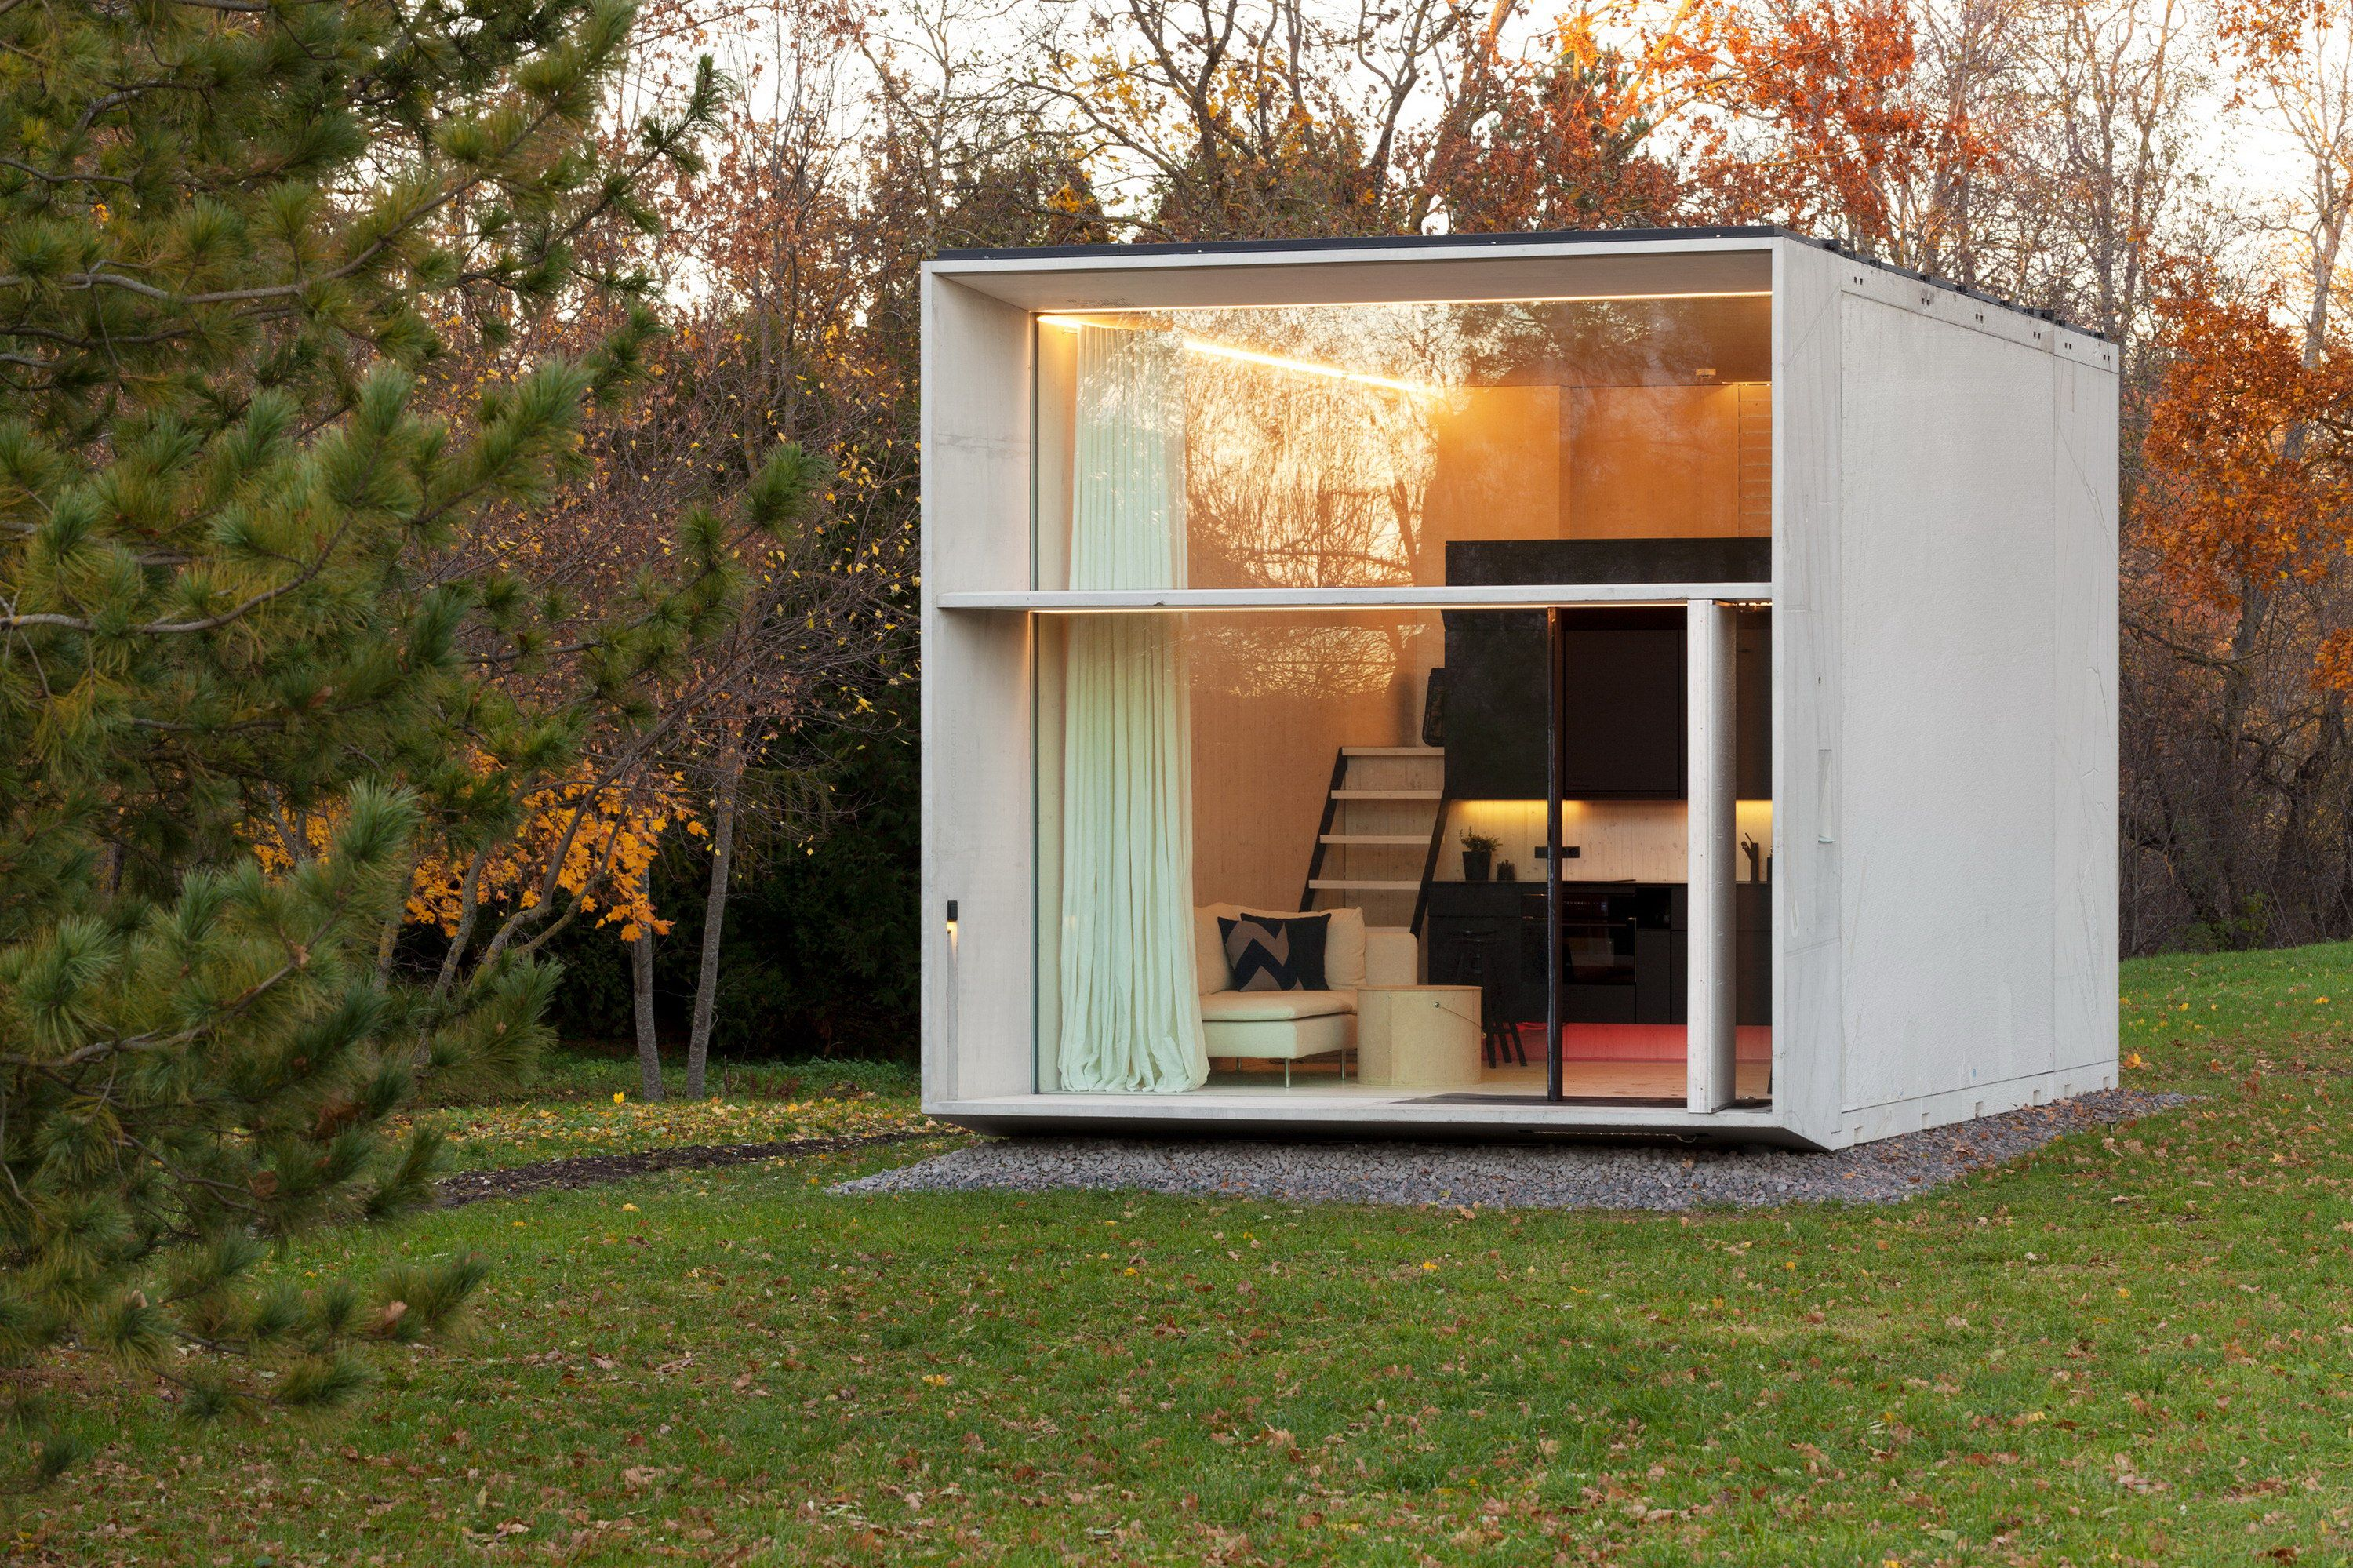 Koda Is Prefabricated Tiny Houses Designed By Estonian Studio Kodasema